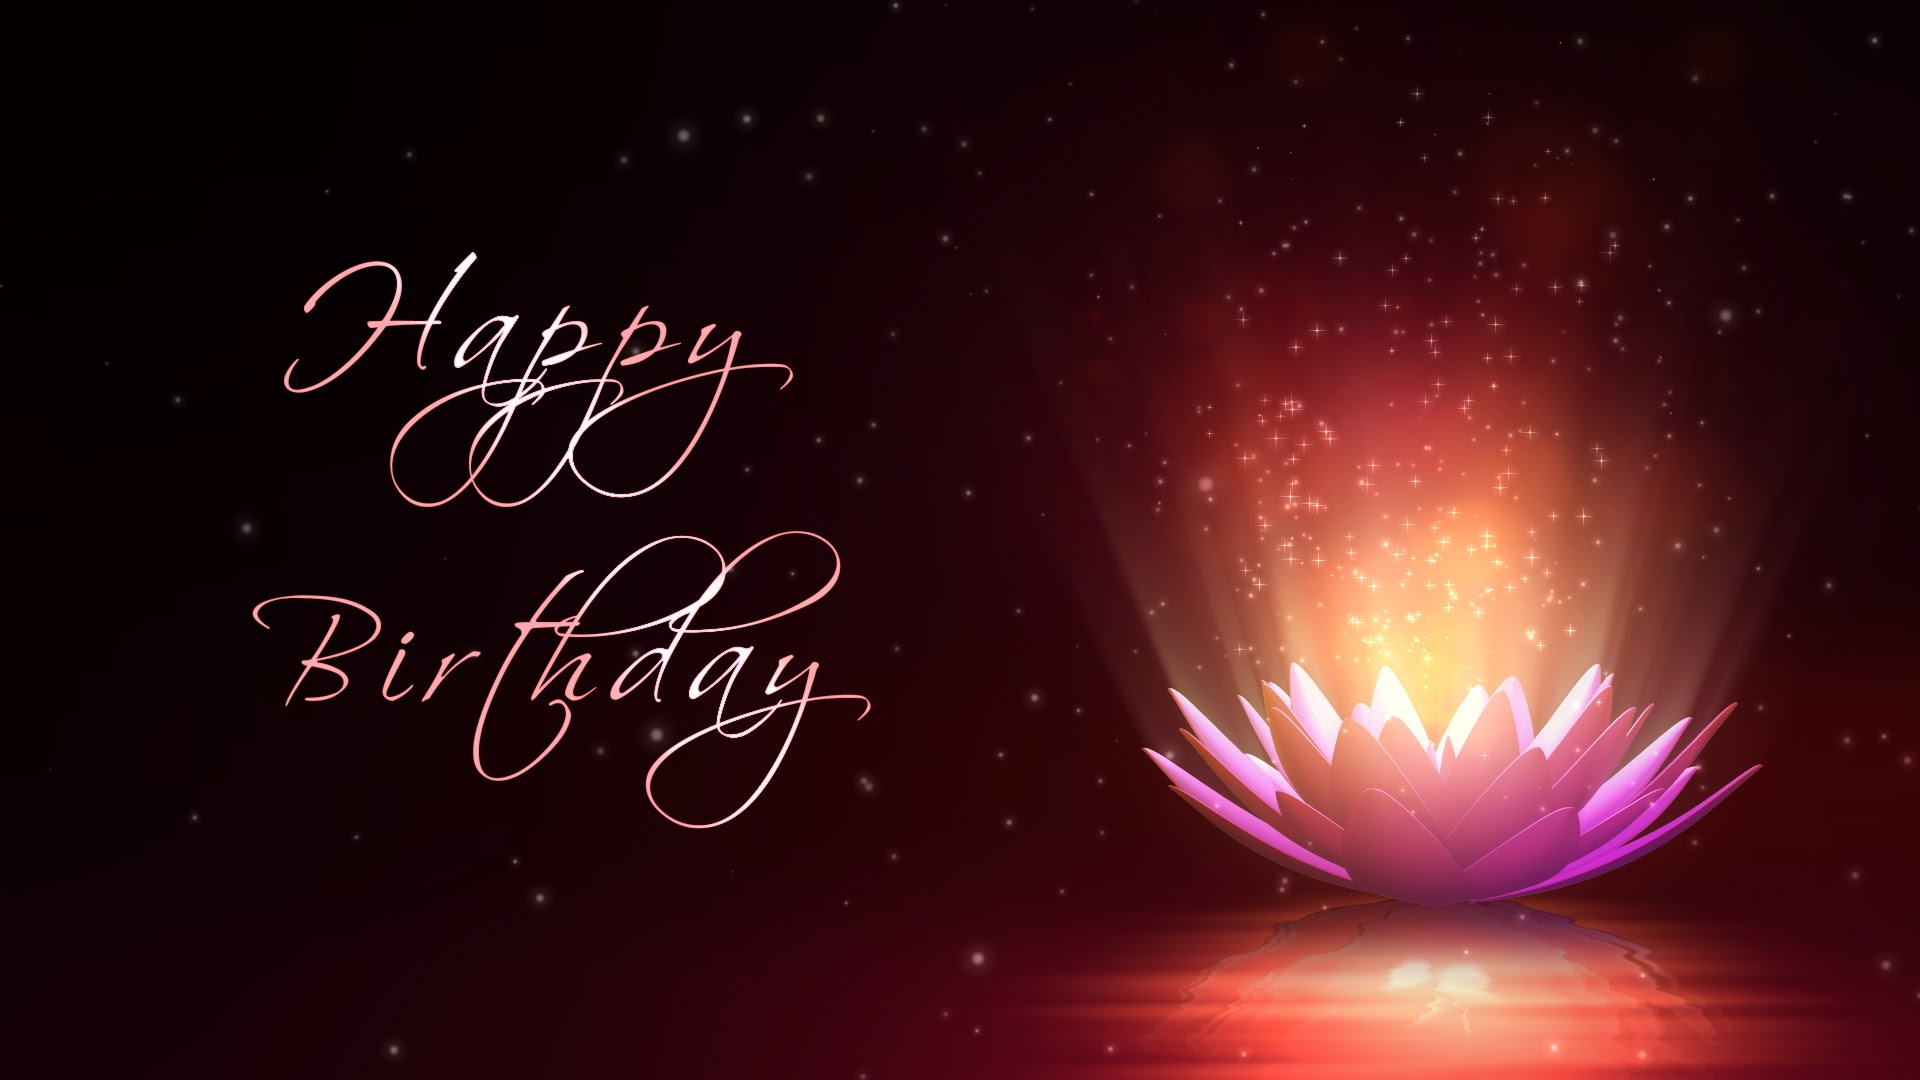 Musical Birthday Quotes Wallpapers Birthday Background Images 27 Wallpapers Adorable